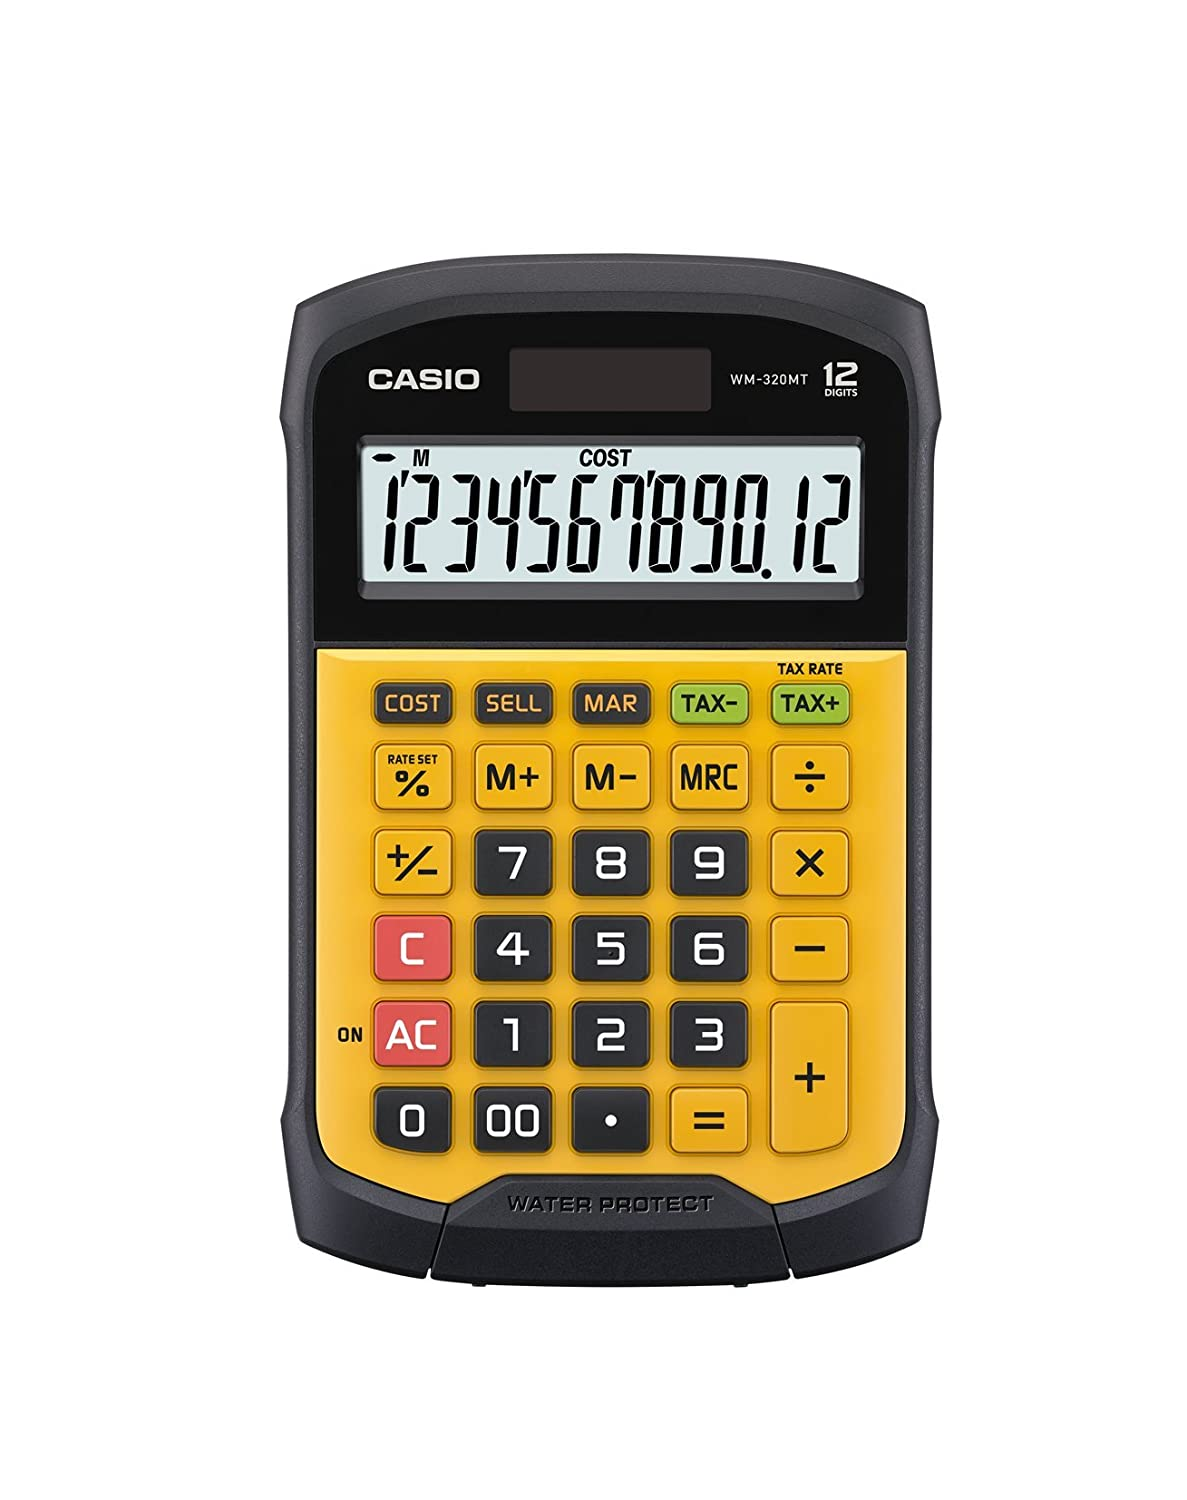 Casio WM-320MT Calculator, 9.27L x 6.2W x 1.42H Yellow/Black Casio Inc.